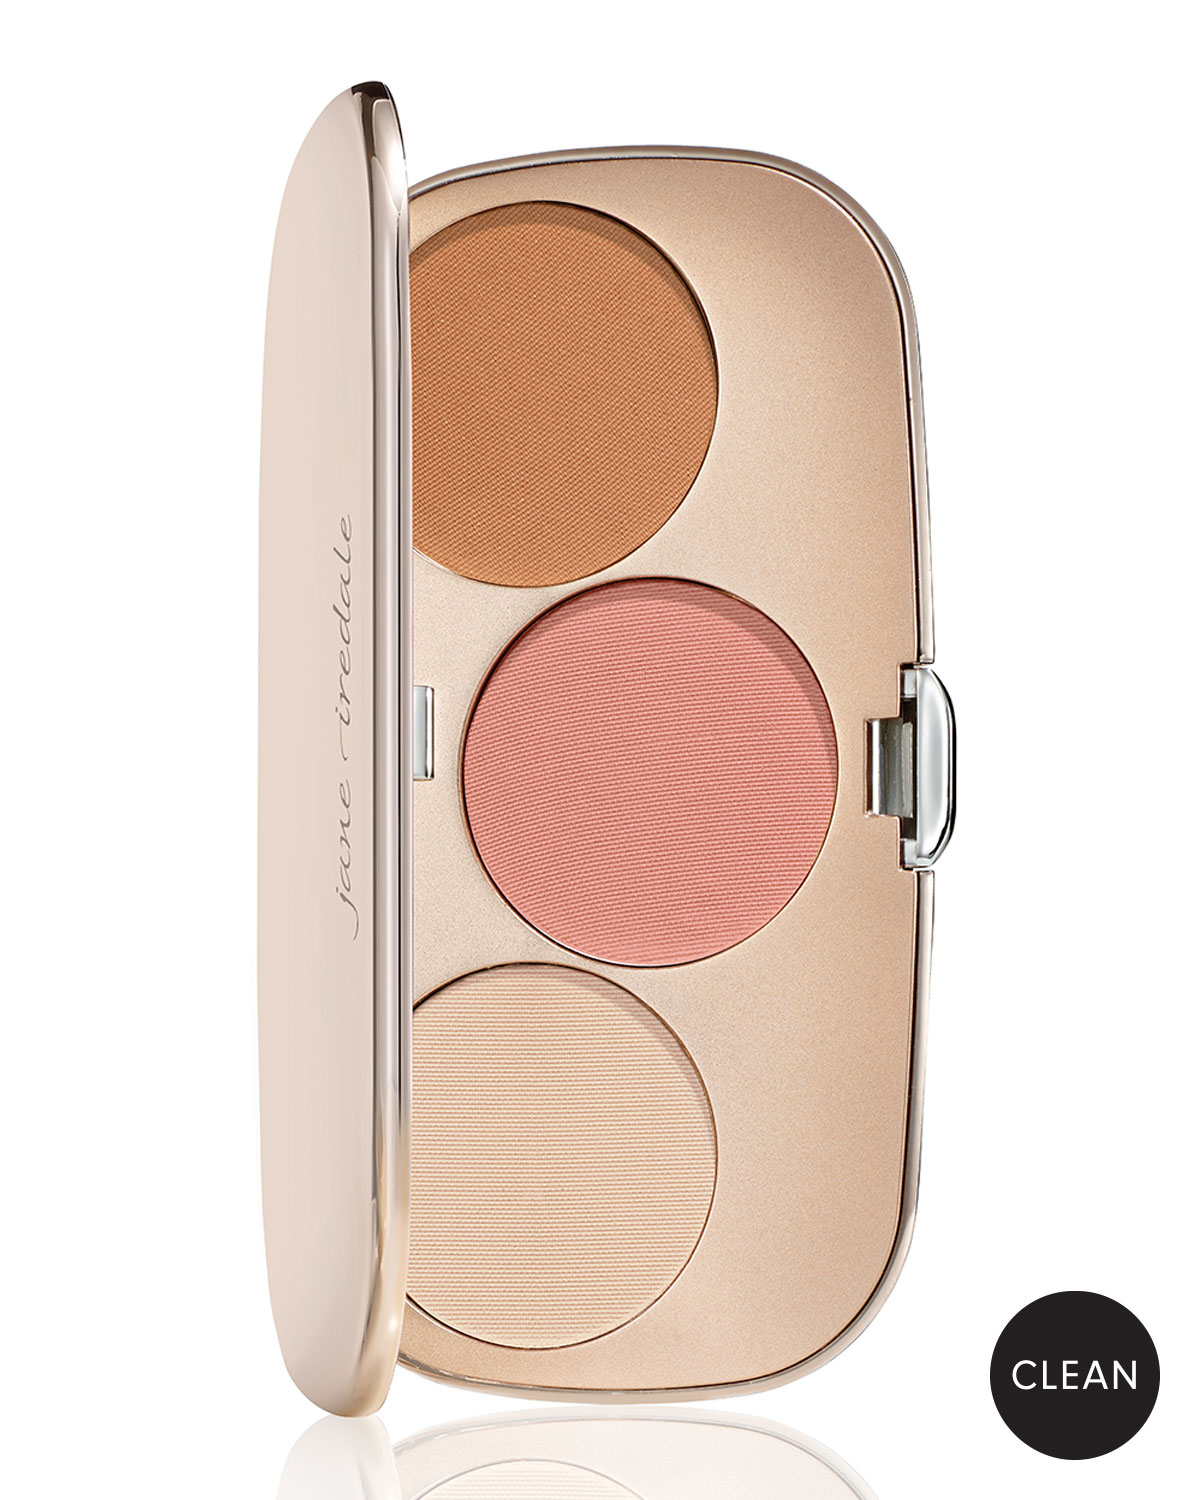 Jane Iredale GreatShape Contour Kit, Cool